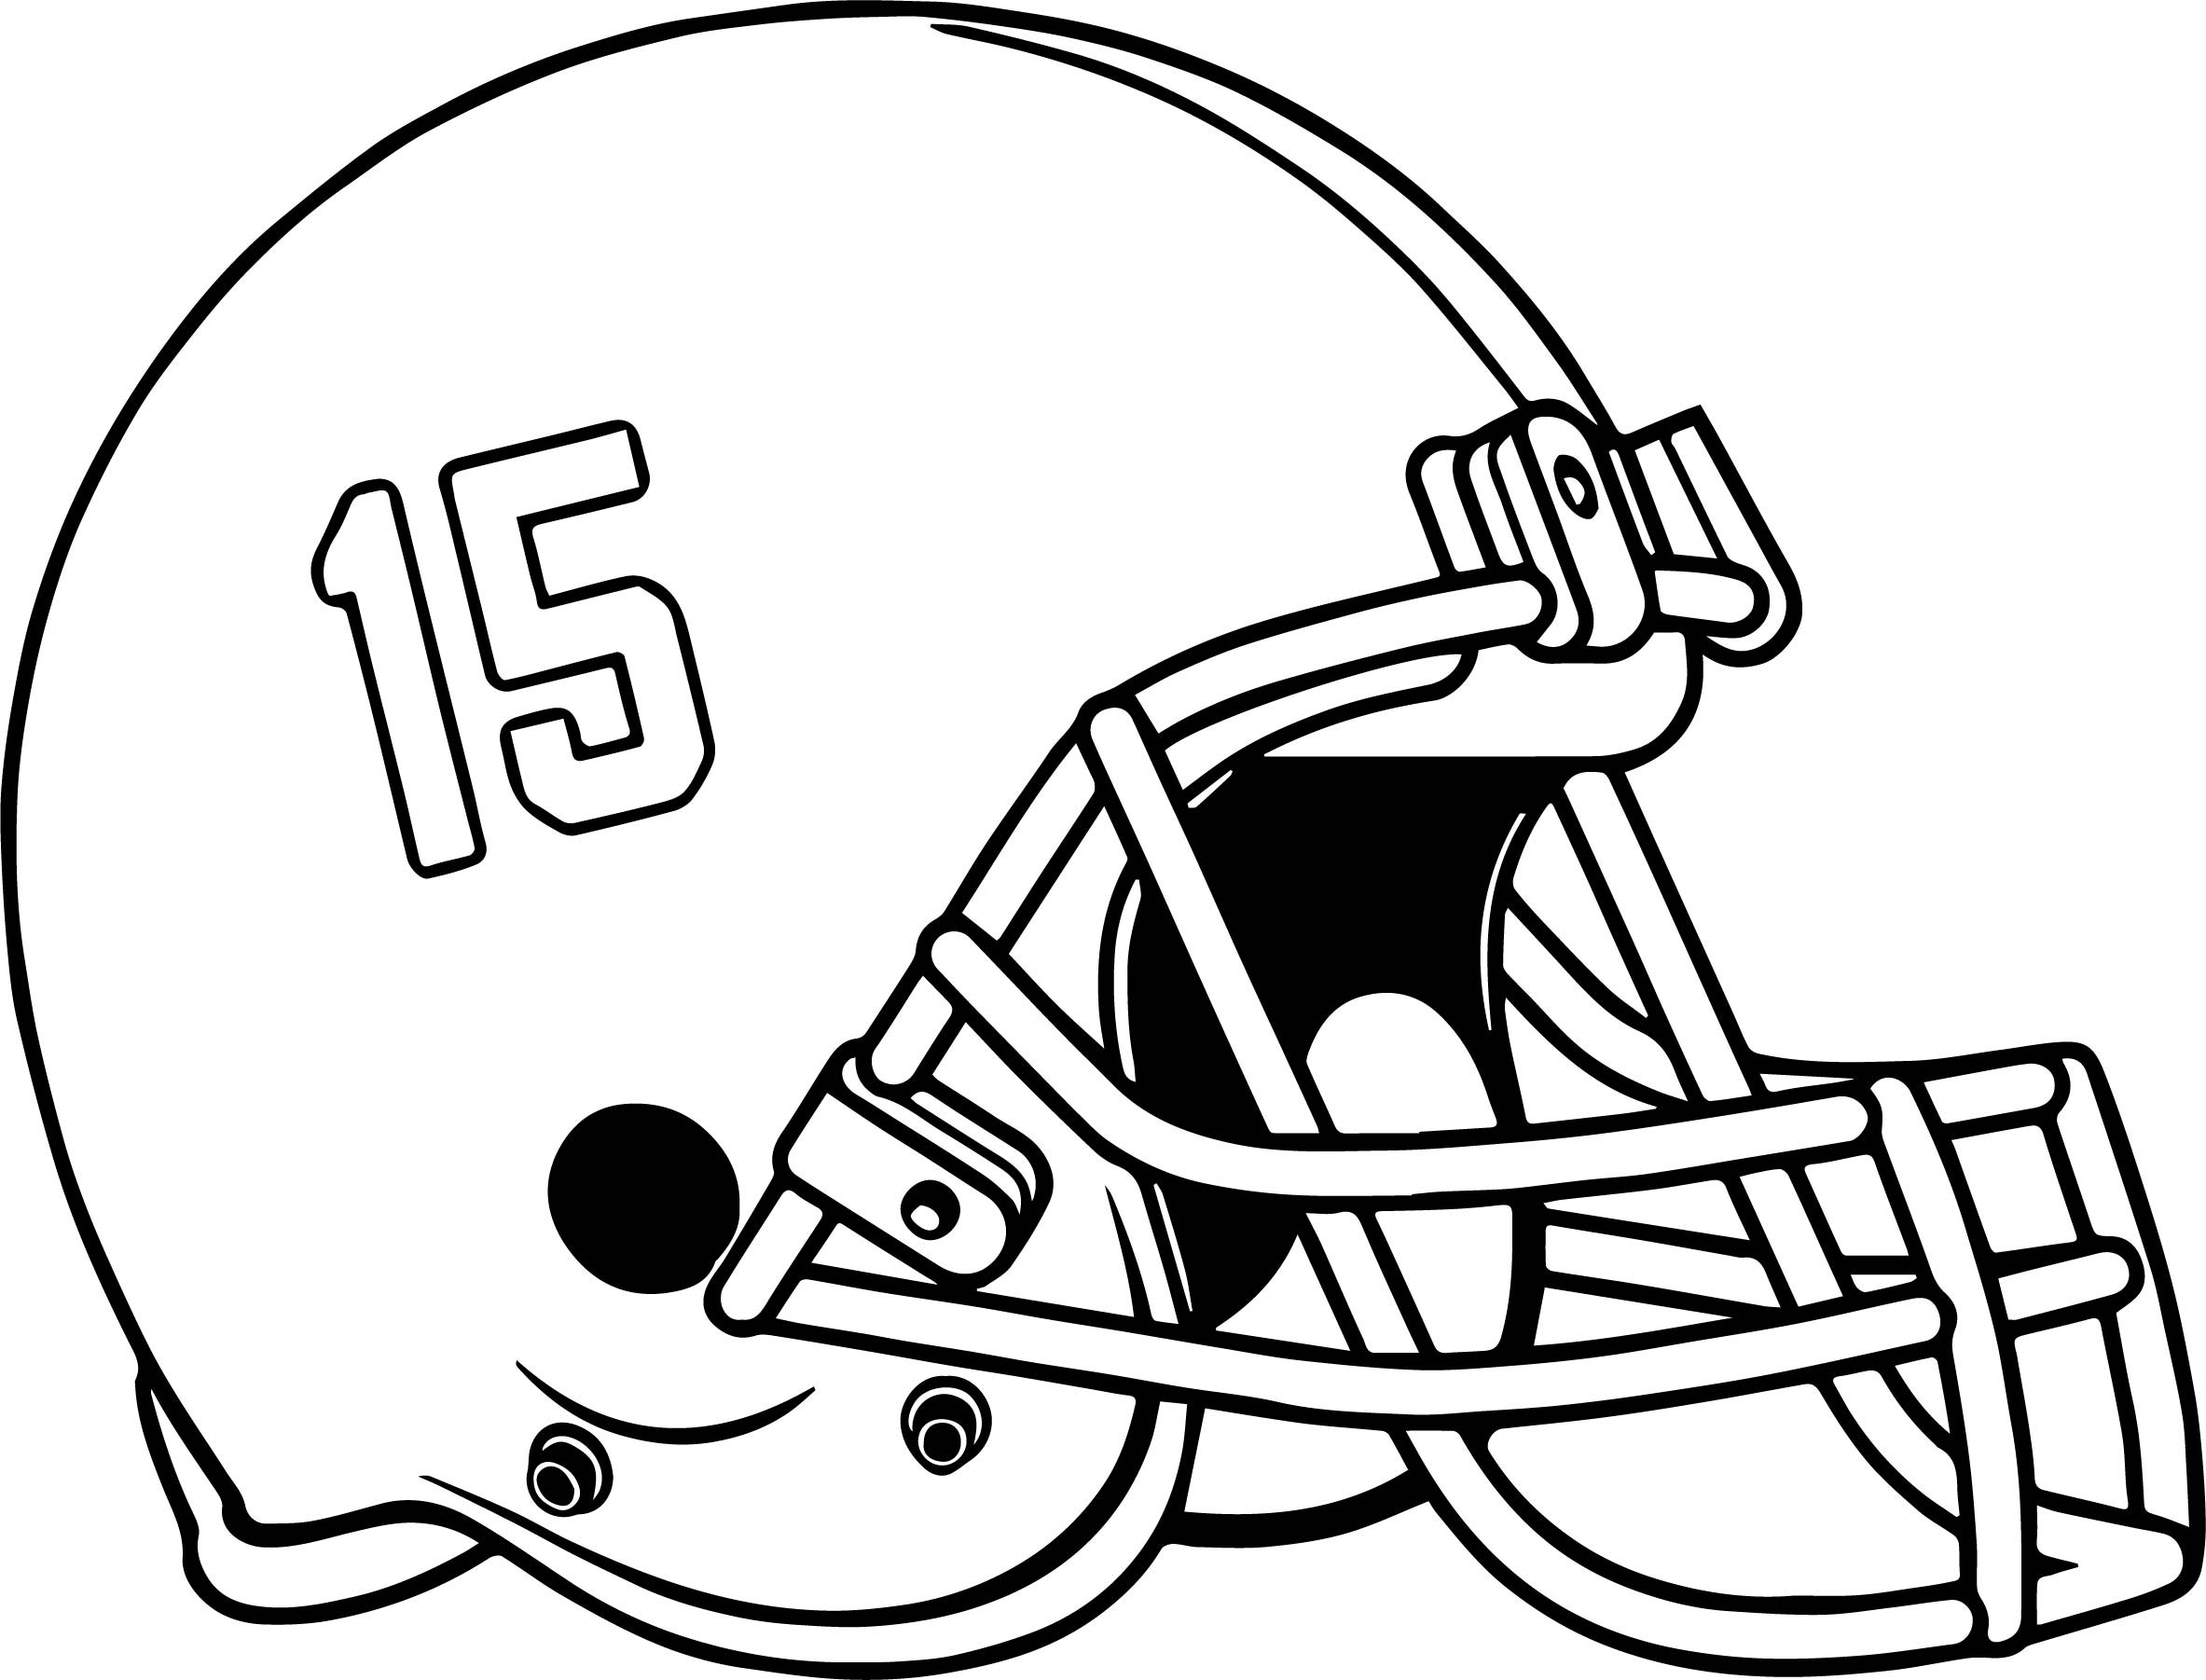 College Logo Coloring Pages At Getcolorings